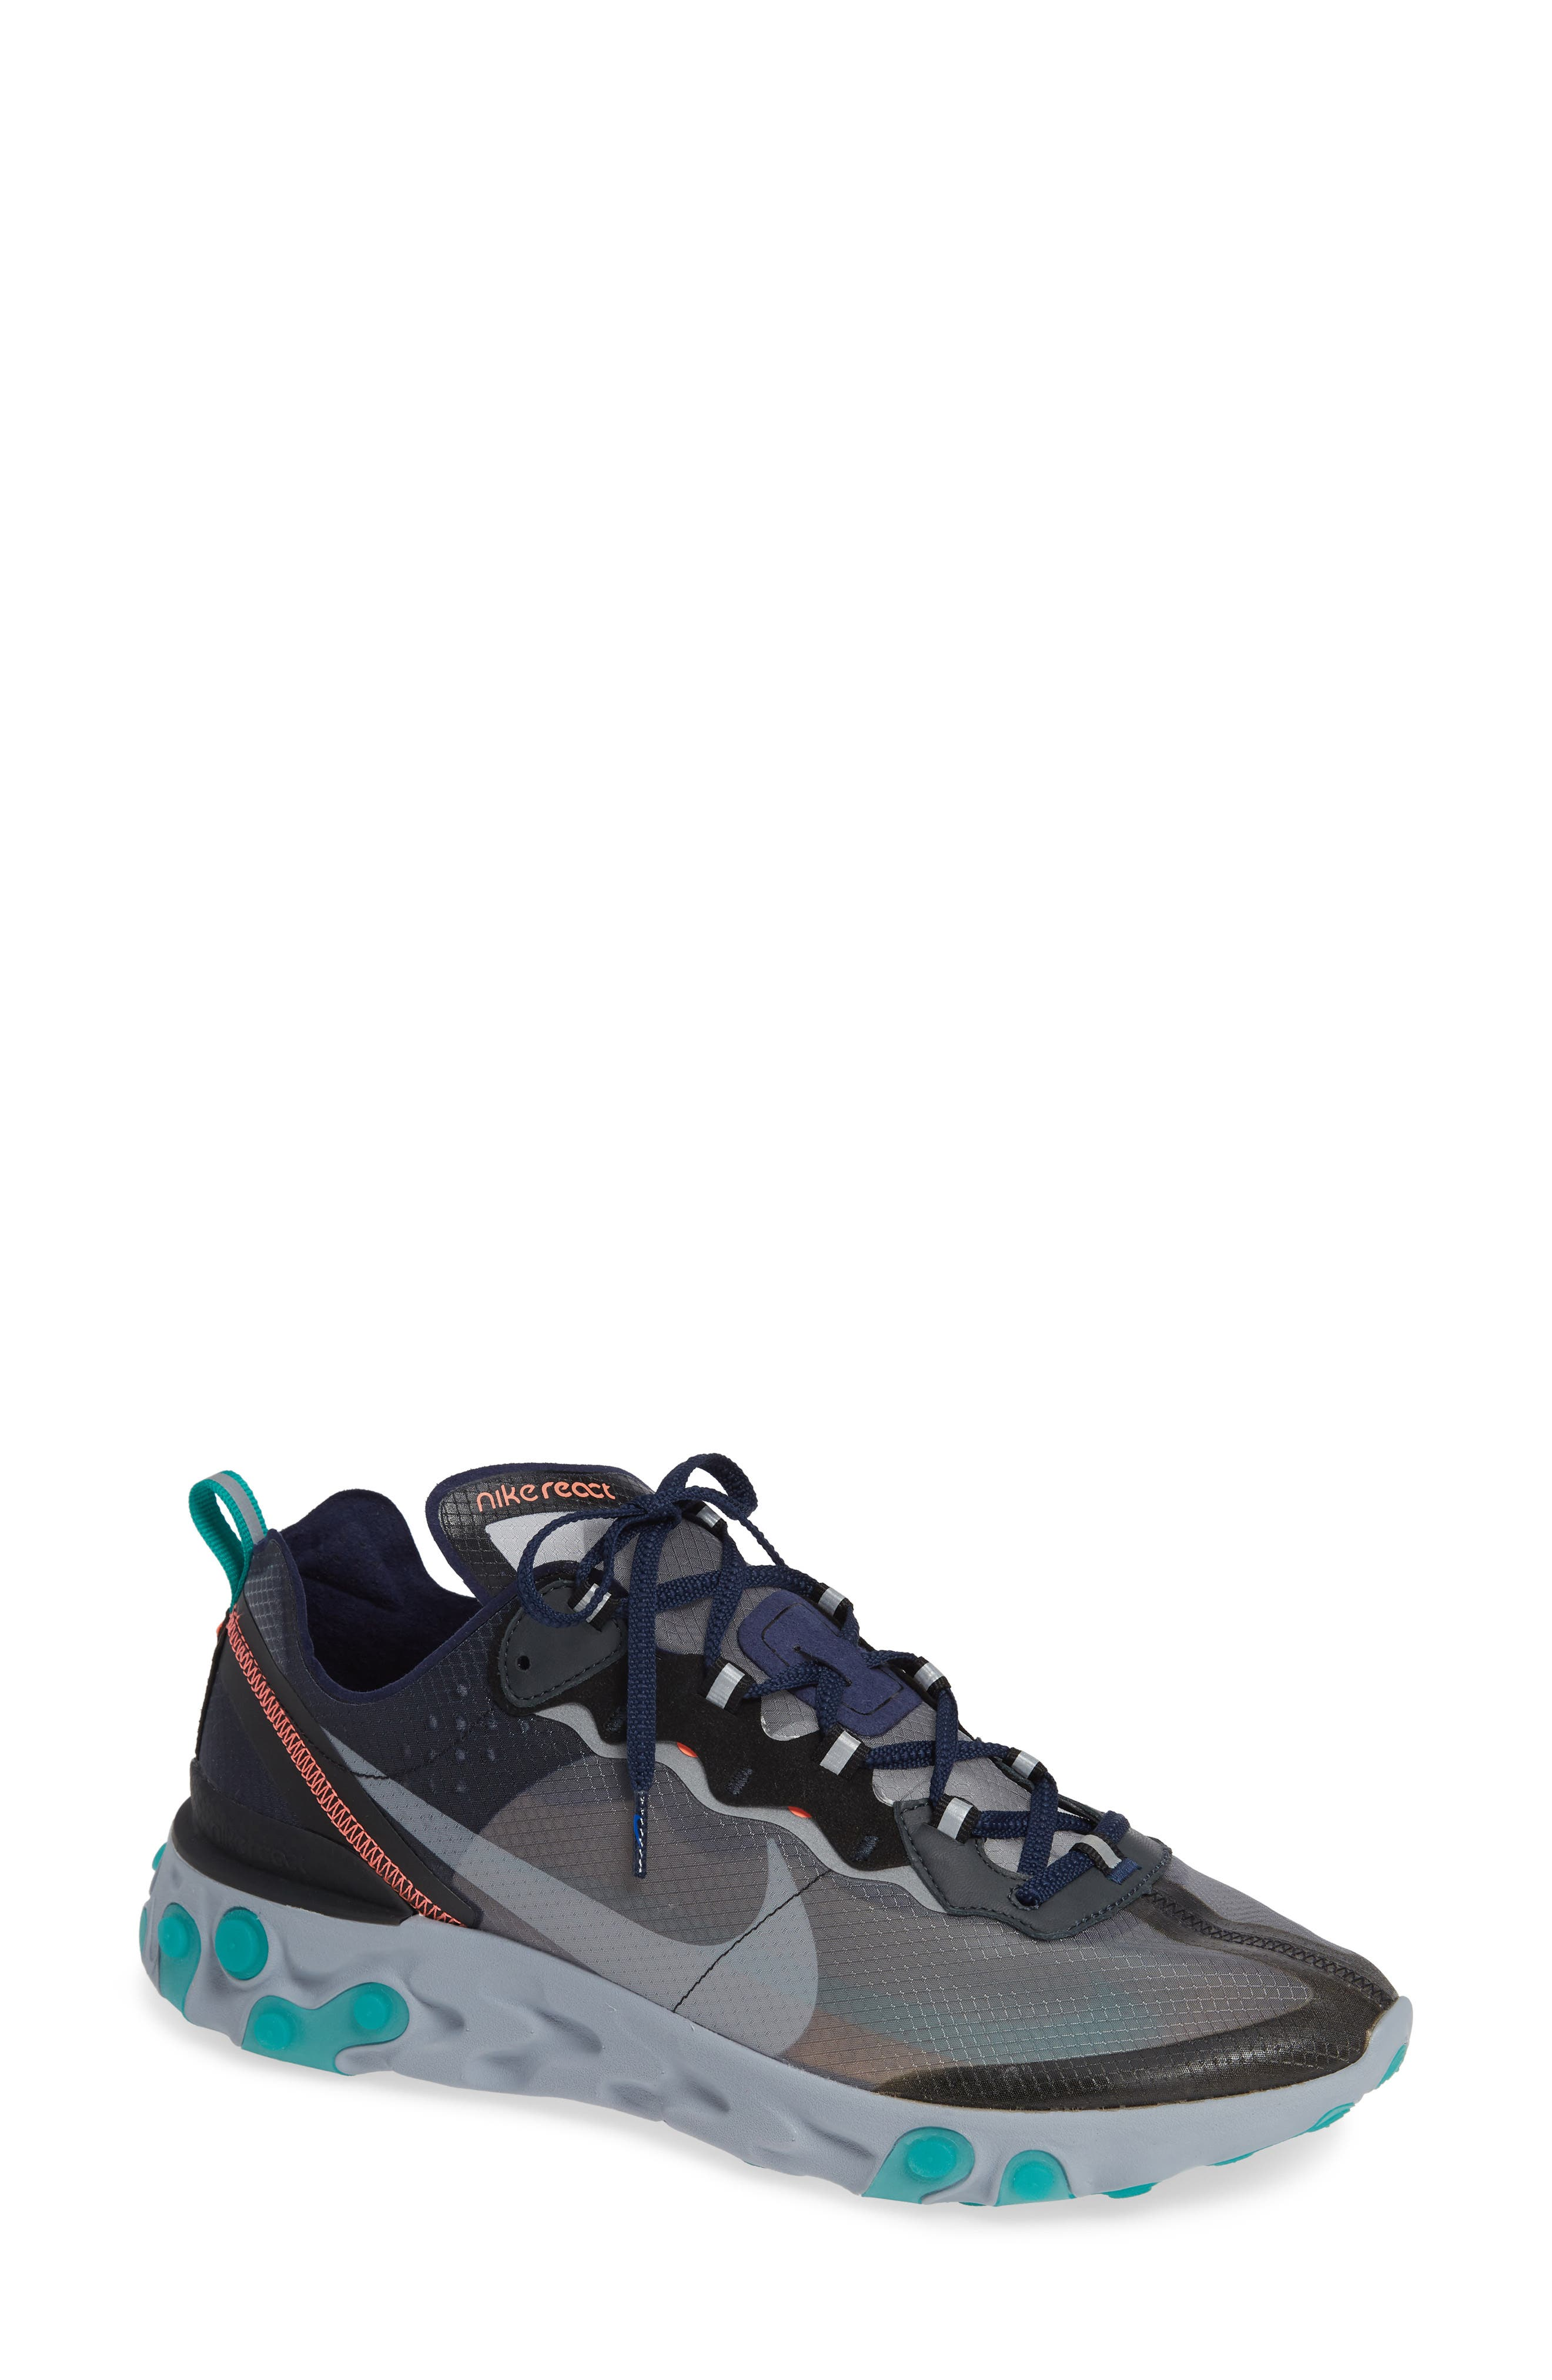 React Element 87 Sneaker,                         Main,                         color, BLACK/ MIDNIGHT NAVY/ GREEN